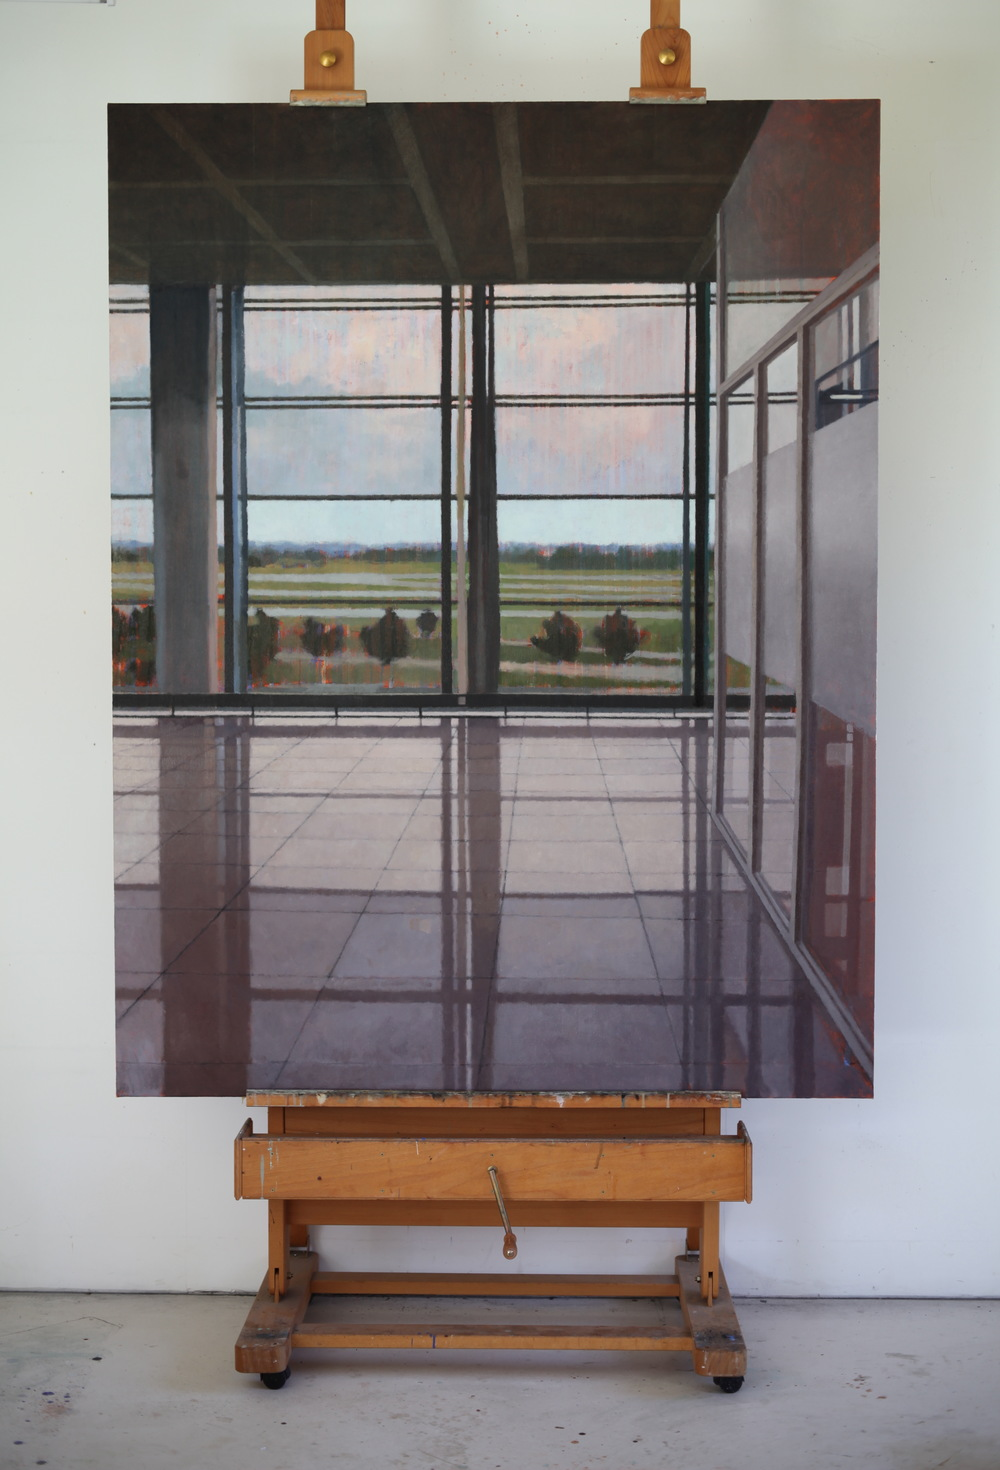 Interior 280 (Munich), 2011, Oil on linen, 1980mm x 1525mm